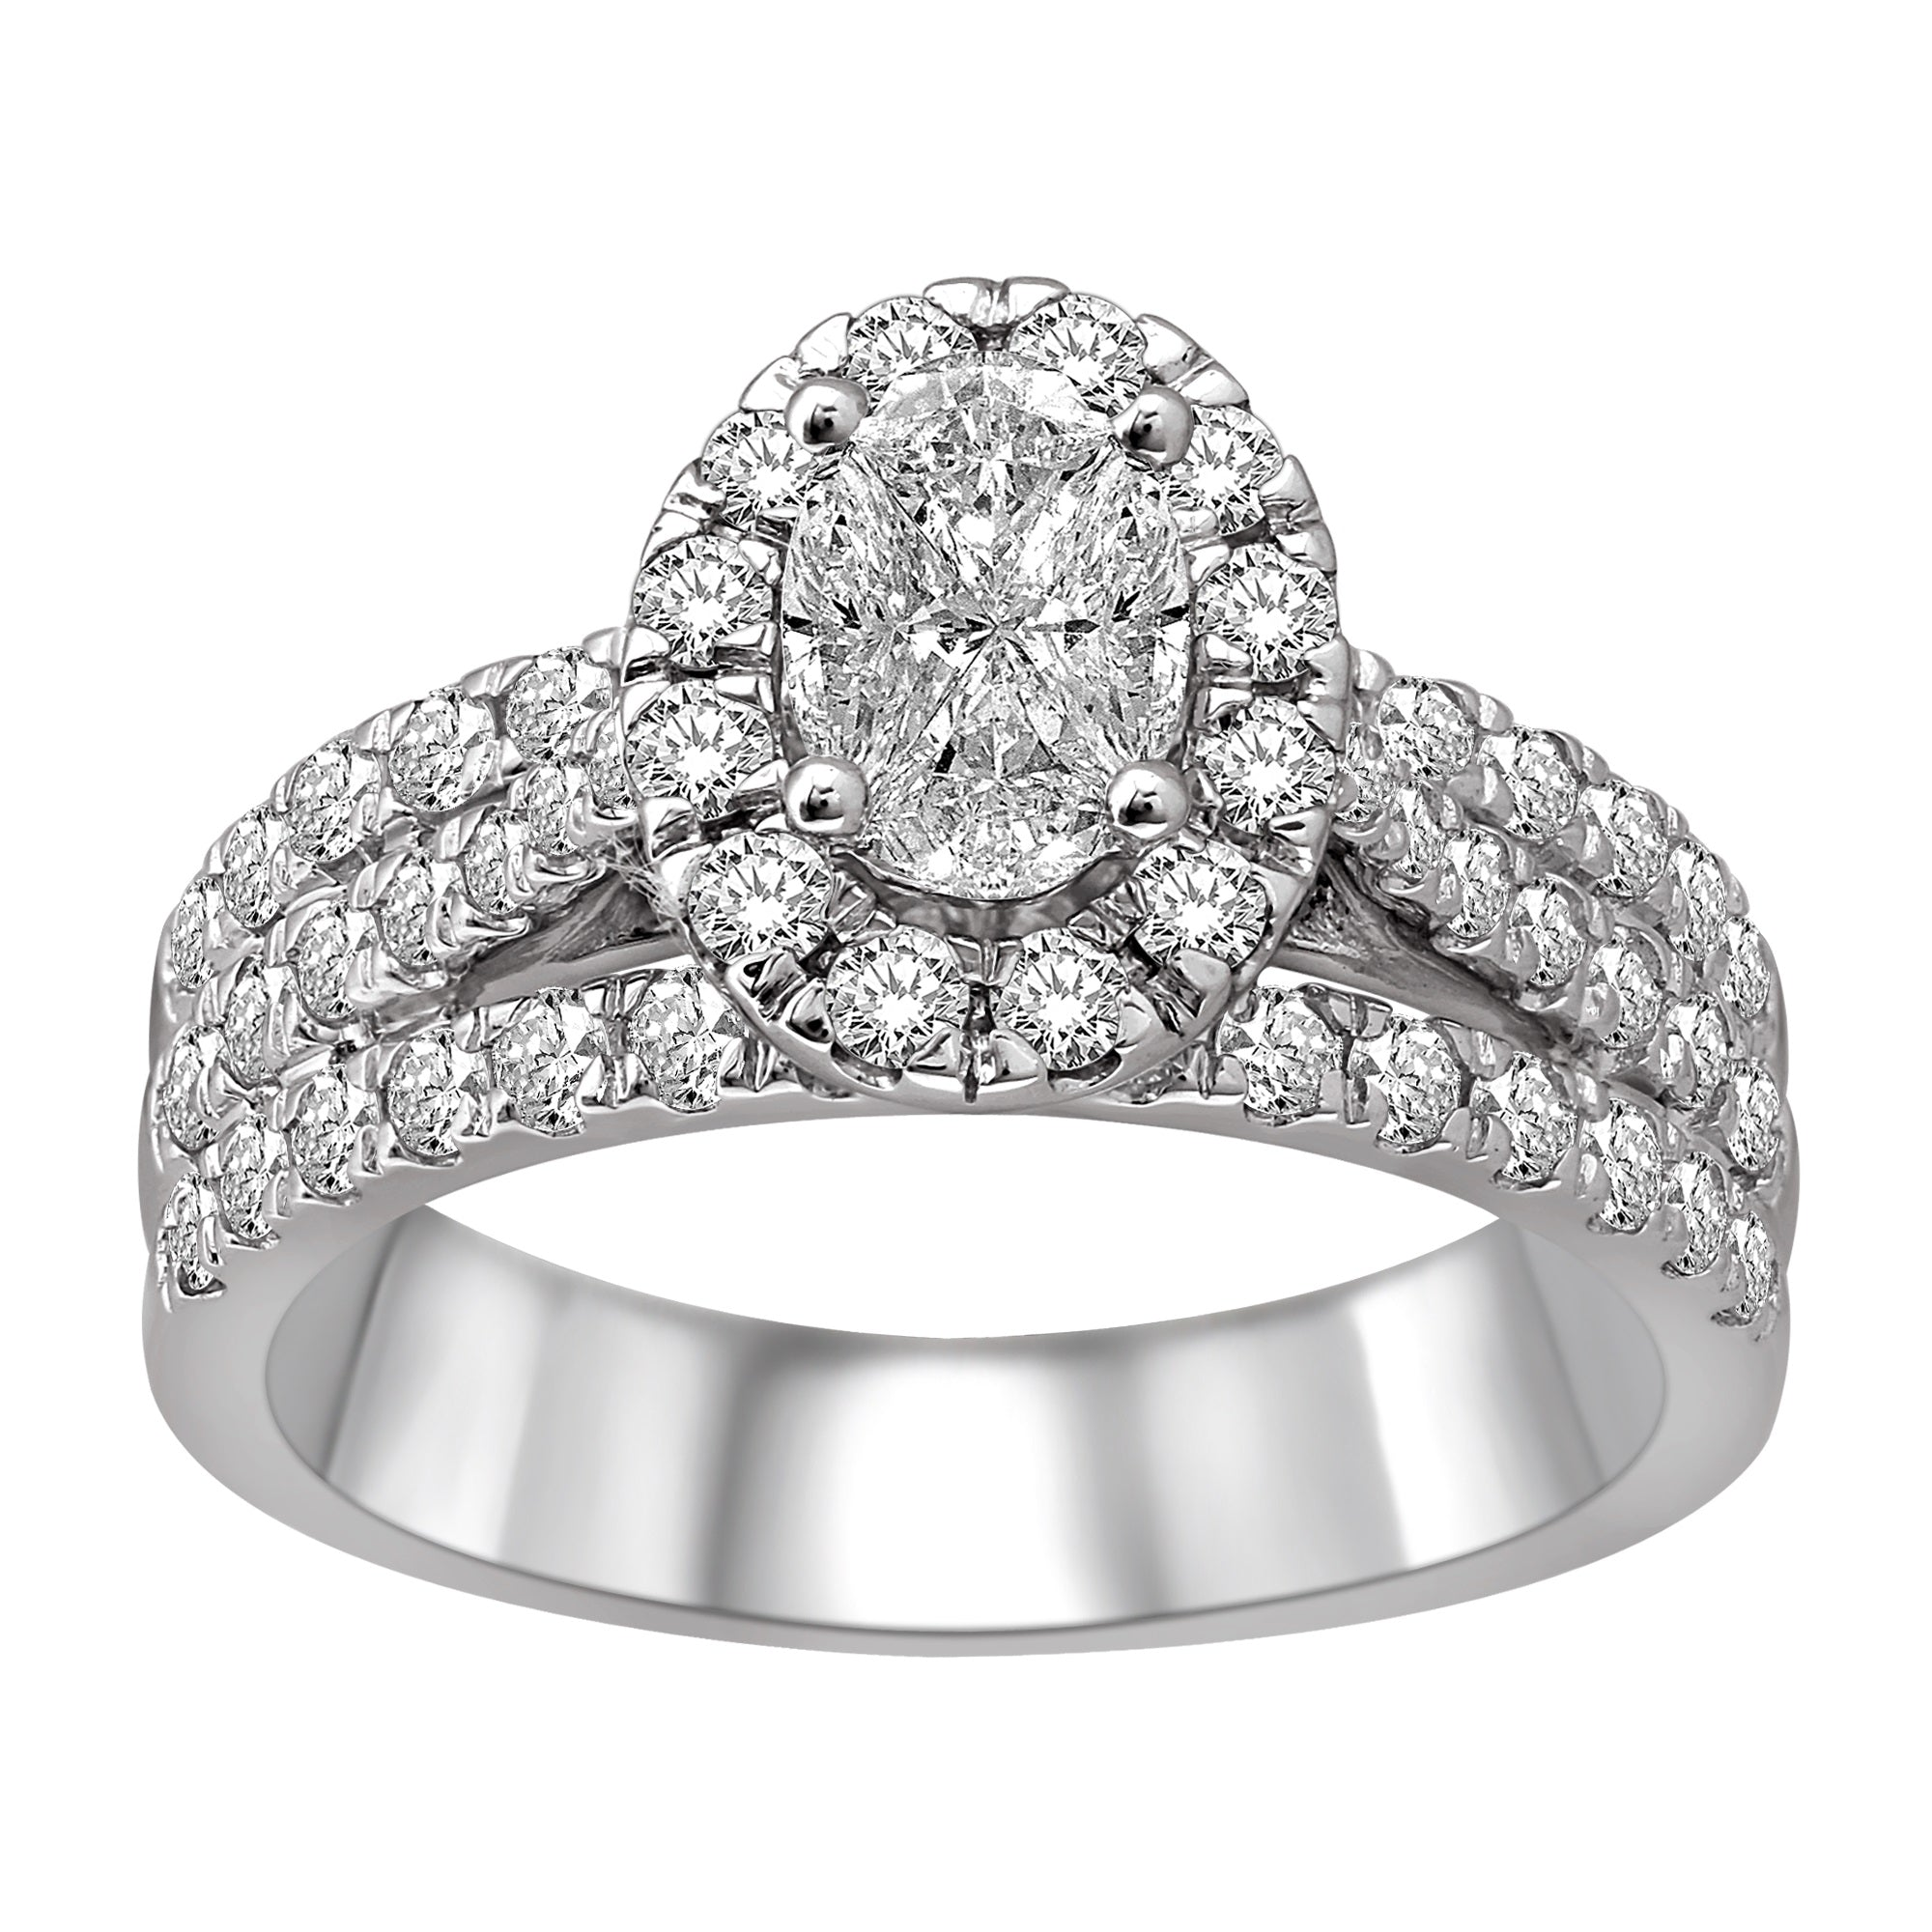 Lovecuts 14K White Gold 1 1/2 Ct.Tw.Diamond Engagement Ring